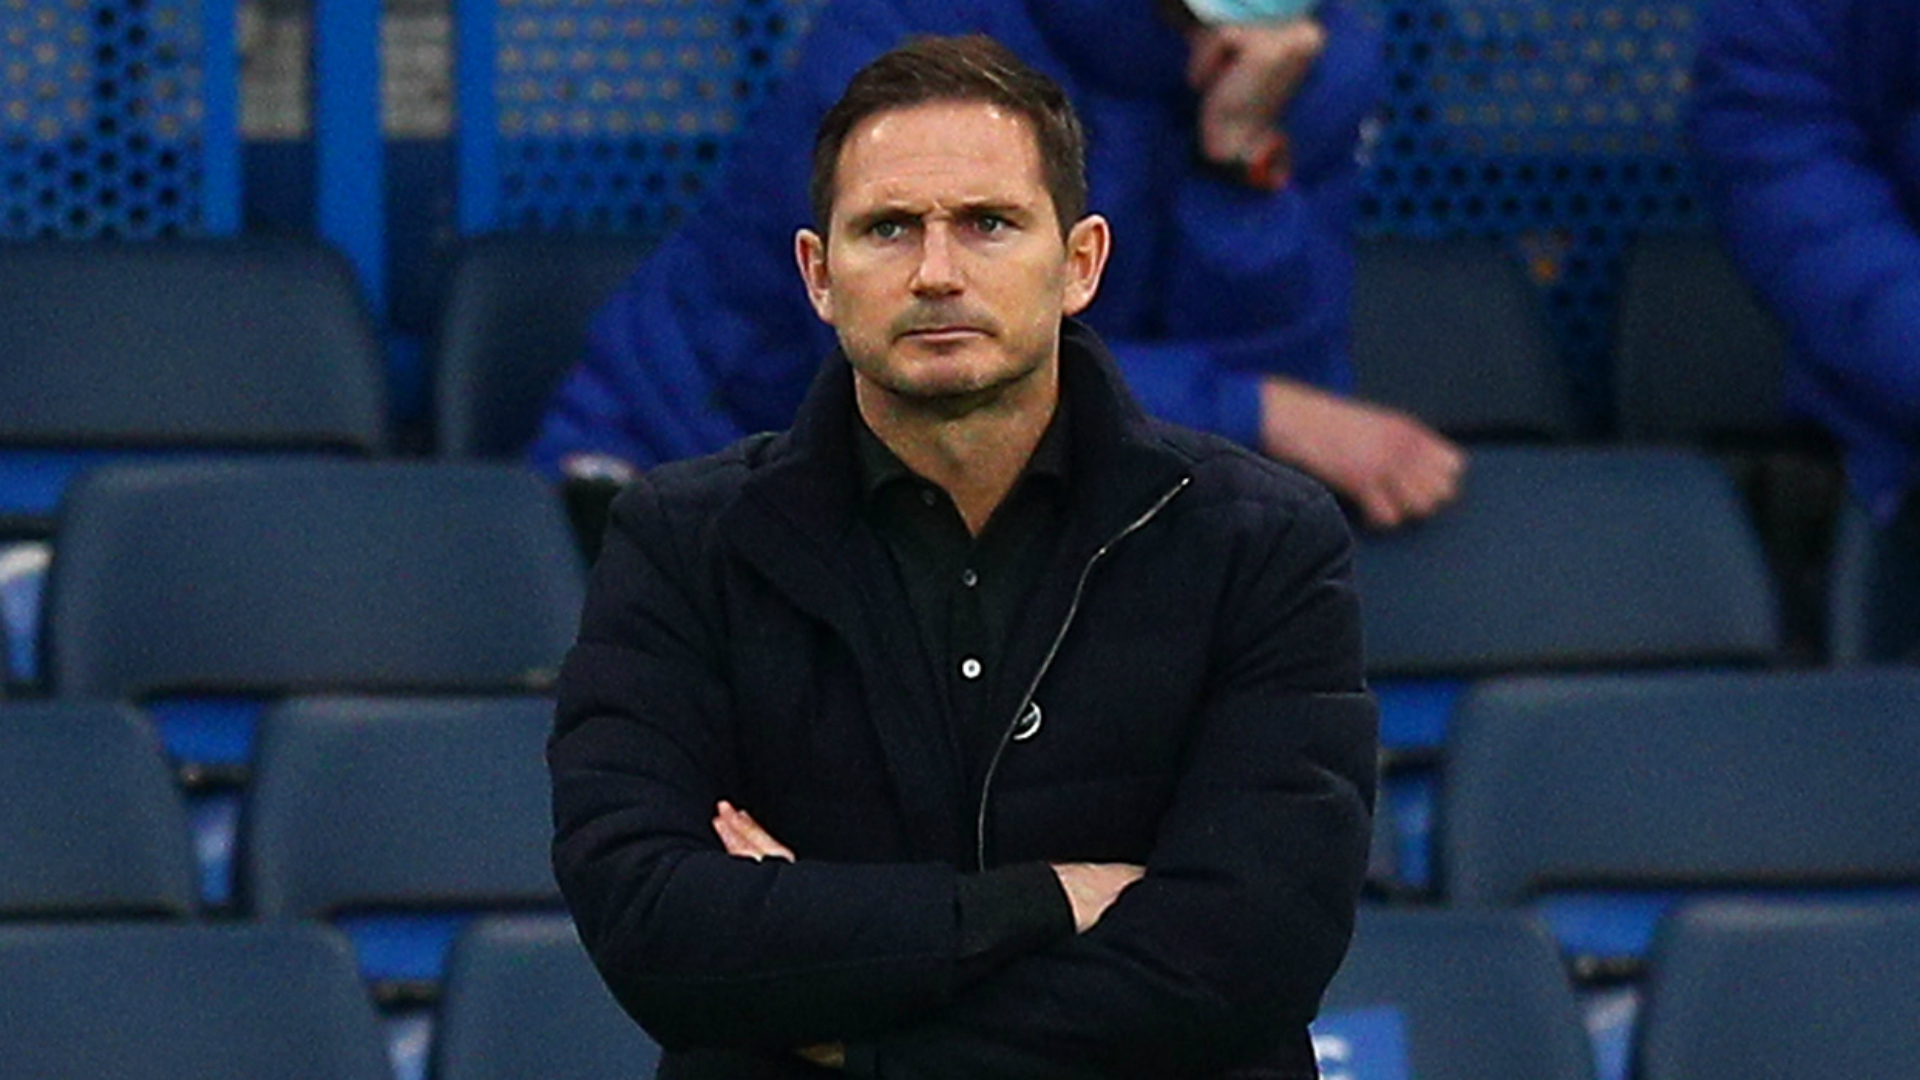 All talk, not much action - Lampard fumes at Chelsea's festive fixture list